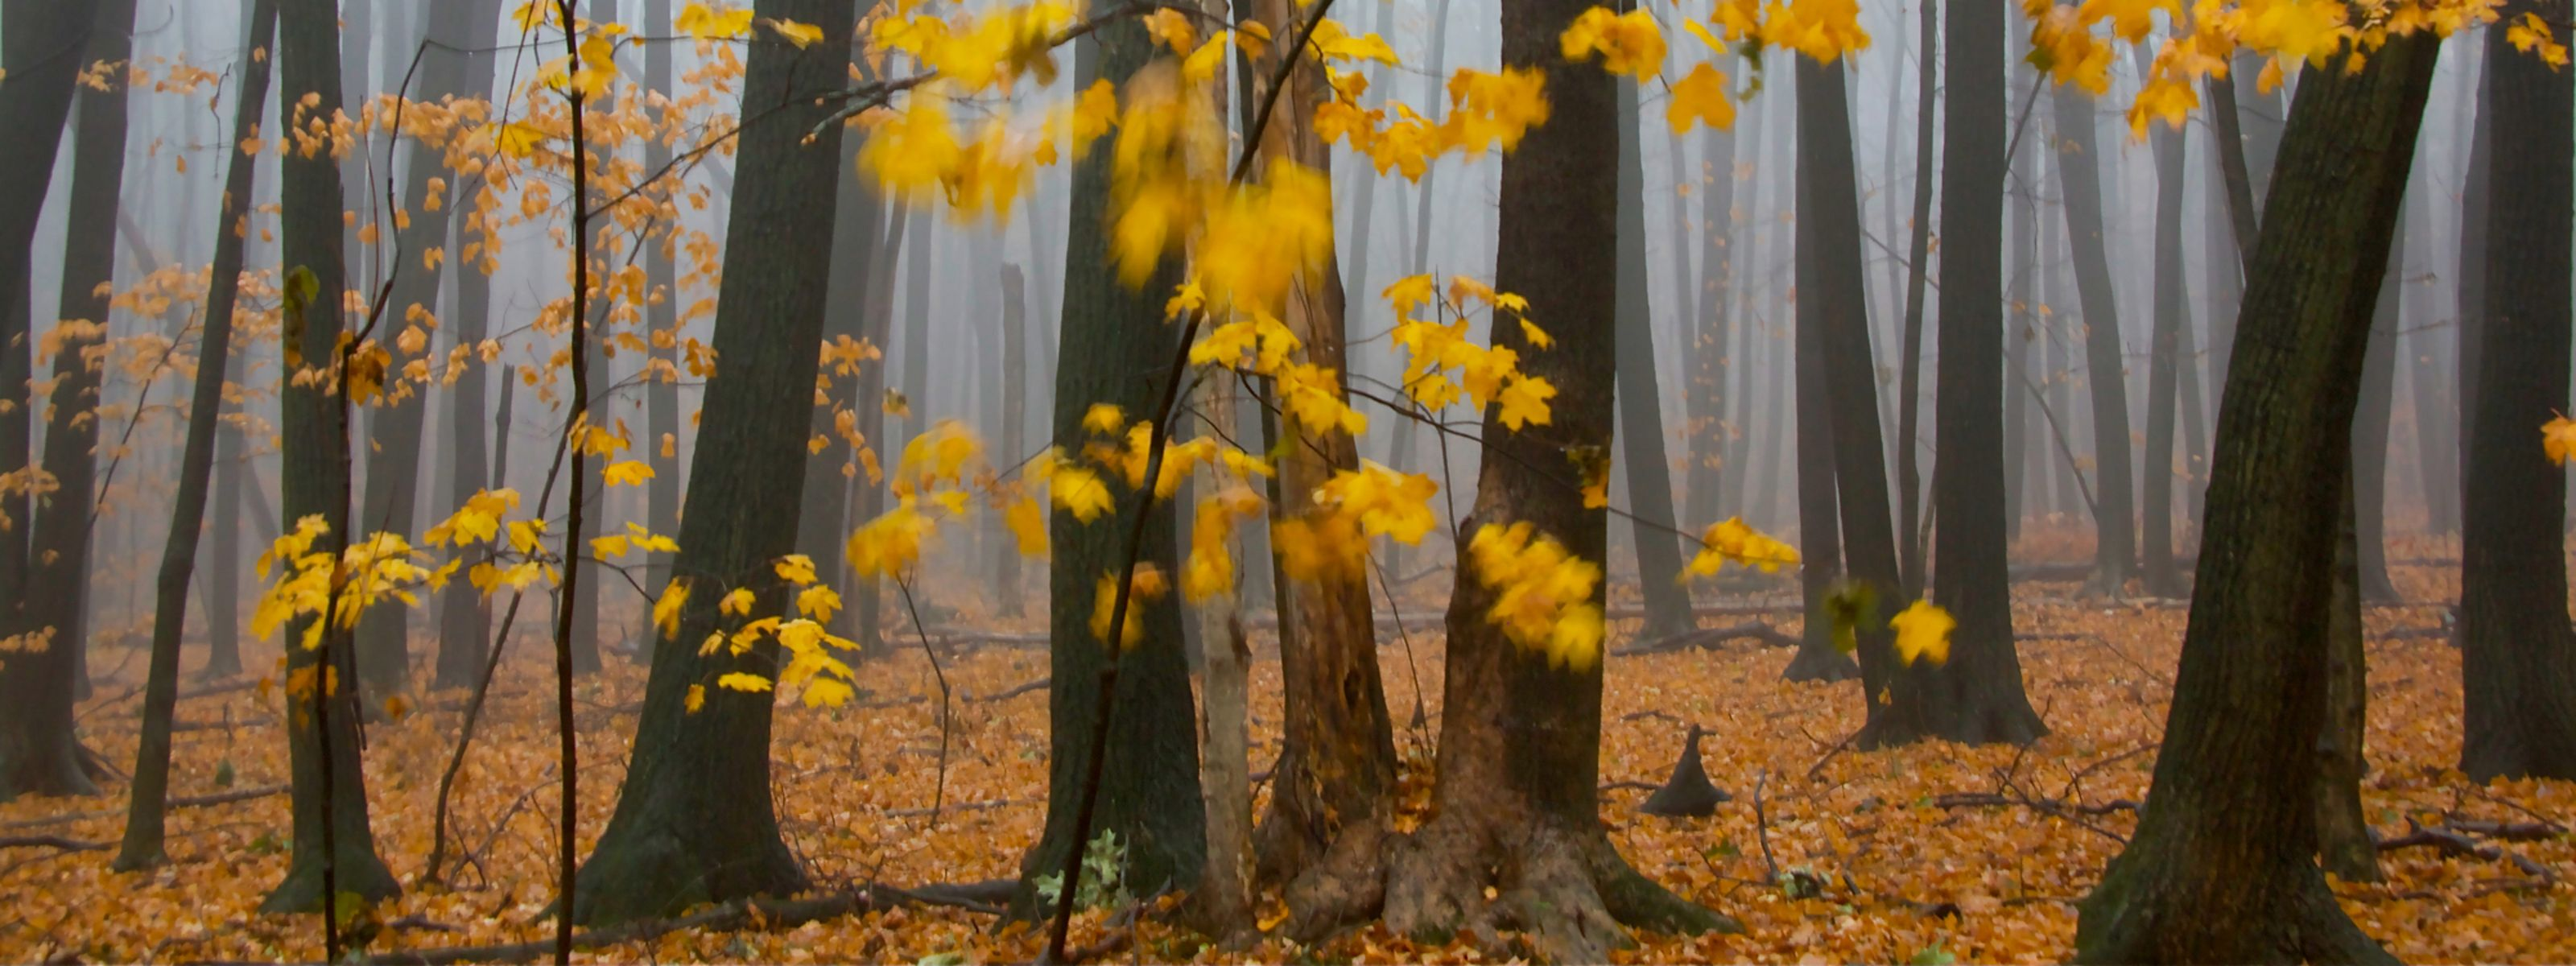 The yellow fall color of maple leaves waving in the wind brighten a foggy forest.